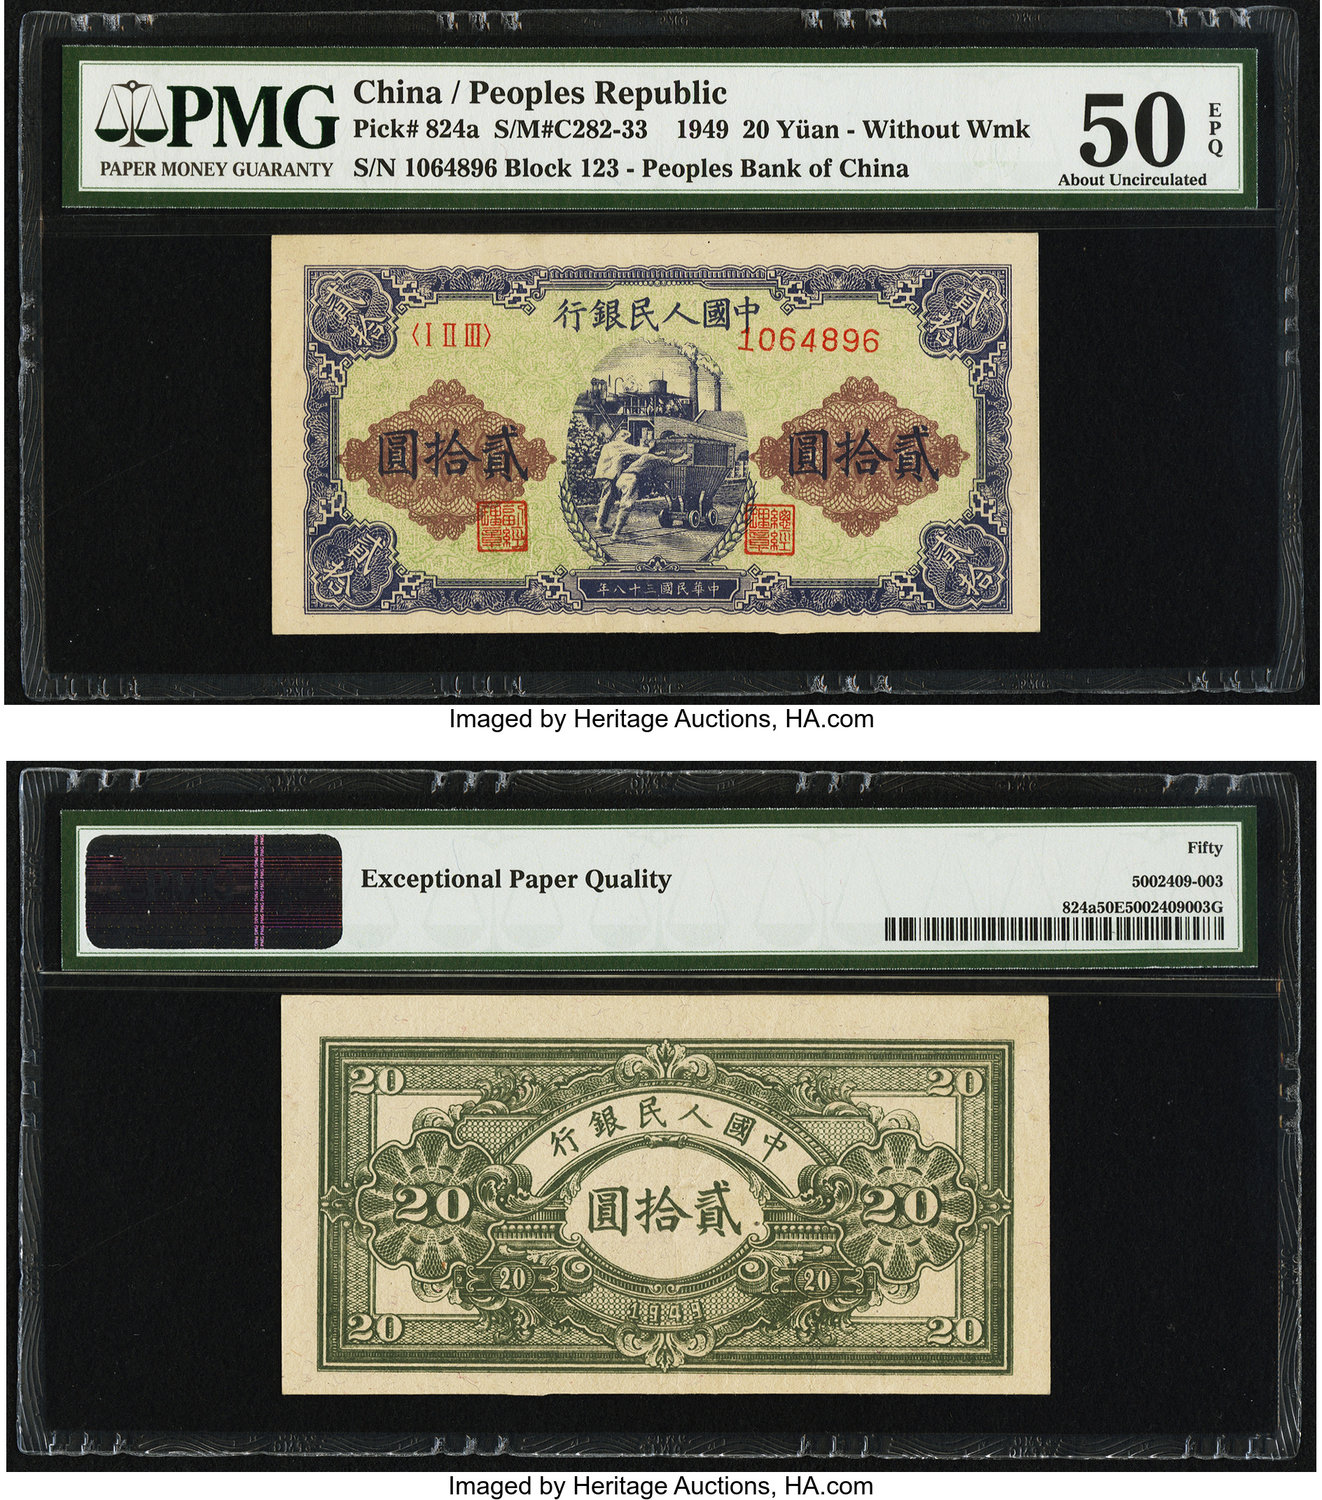 World Currency China Peoples Bank Of 20 Yuan 1949 Pick 824a Two Chinese Workers Push An Ore Cart On This